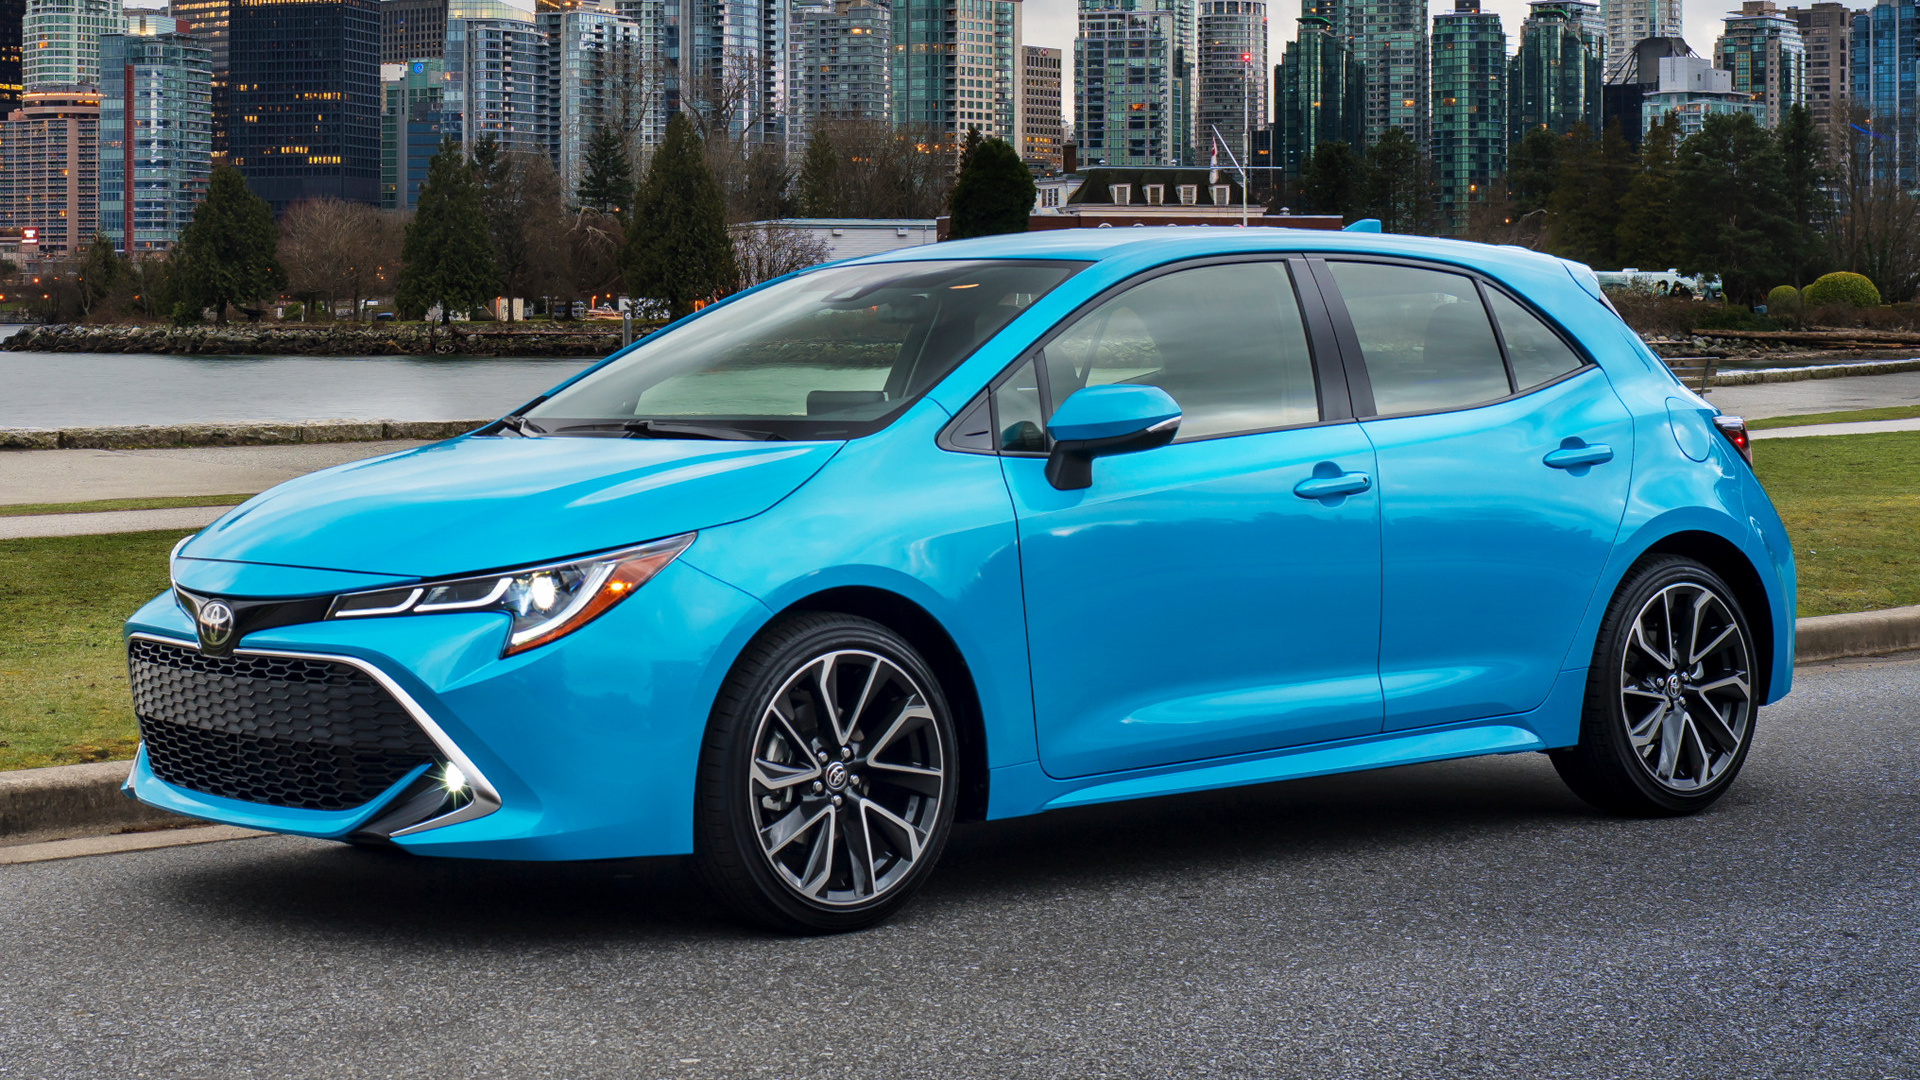 Toyota Corolla XSE Hatchback (2019) Wallpapers and HD ...